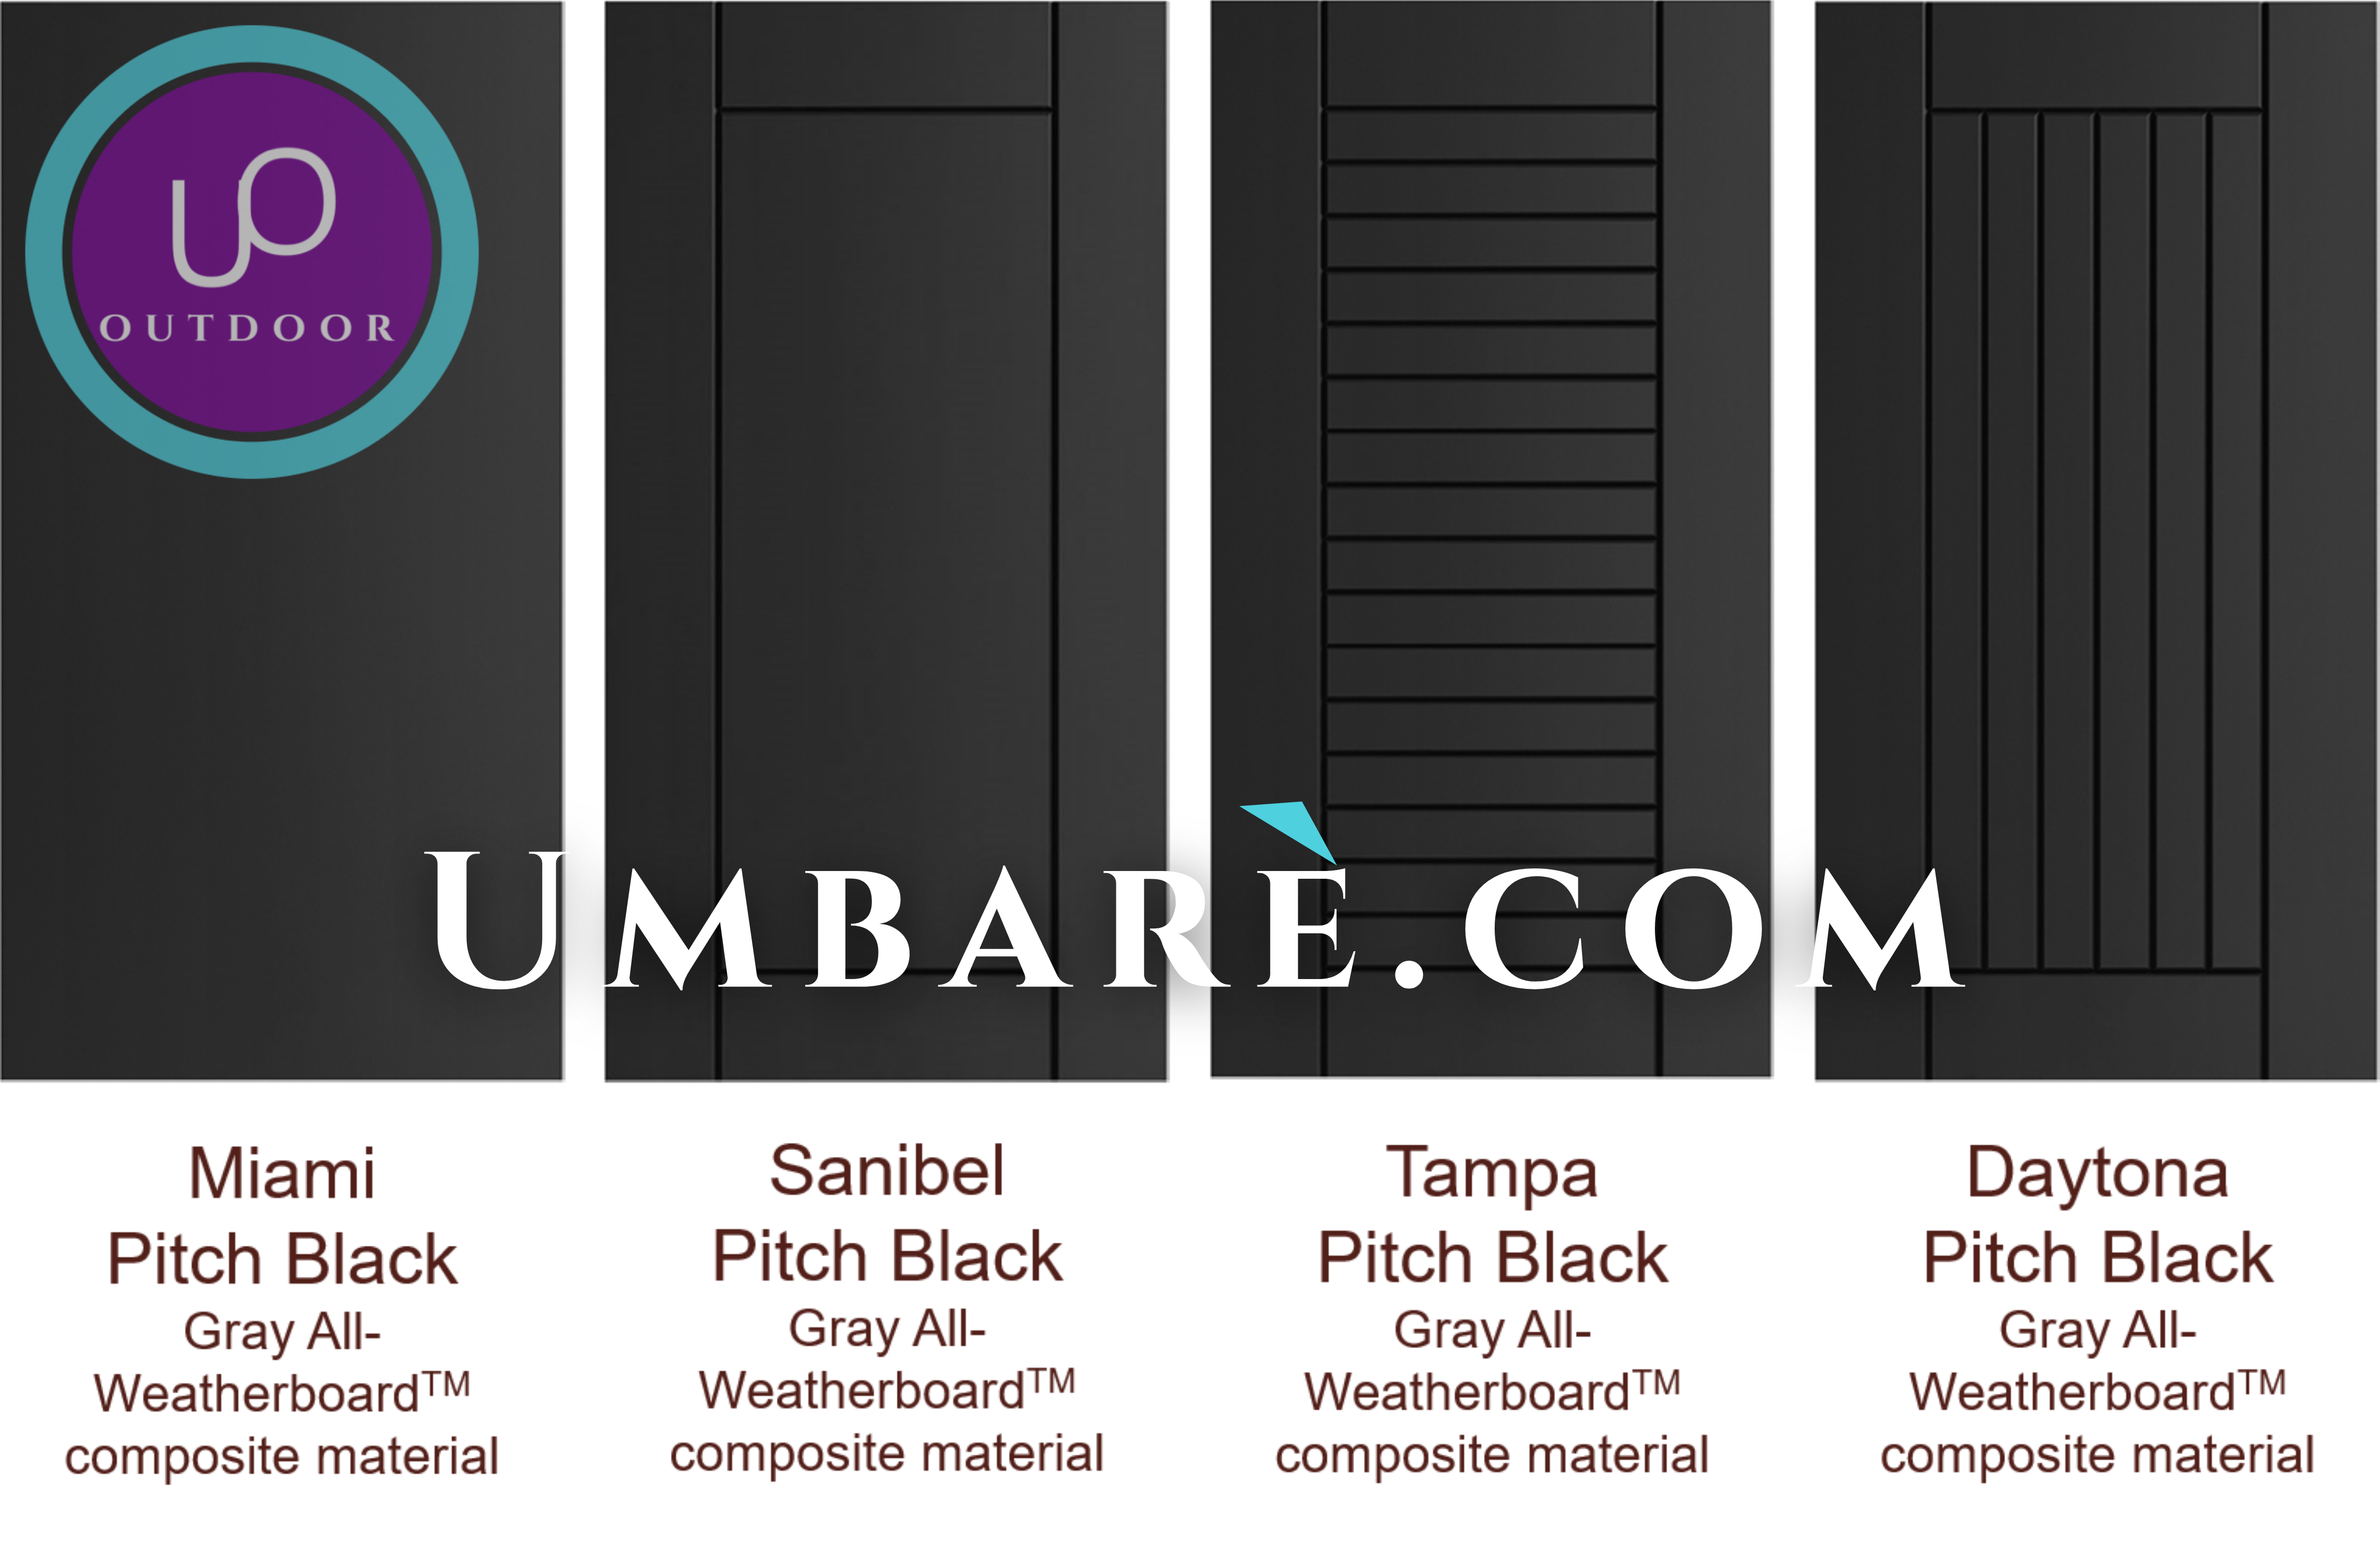 Umbare Outdoor cabinets pitch Black Lakewood Ranch Outdoor Kitchens Sarasota Outdoor Kitchens Bradenton Outdoor Kitchens Venice Outdoor Kitchens Longboat Key Outdoor Kitchens Siesta Key Outdoor Kitchens Manatee Outdoor Kitchens Anna Maria